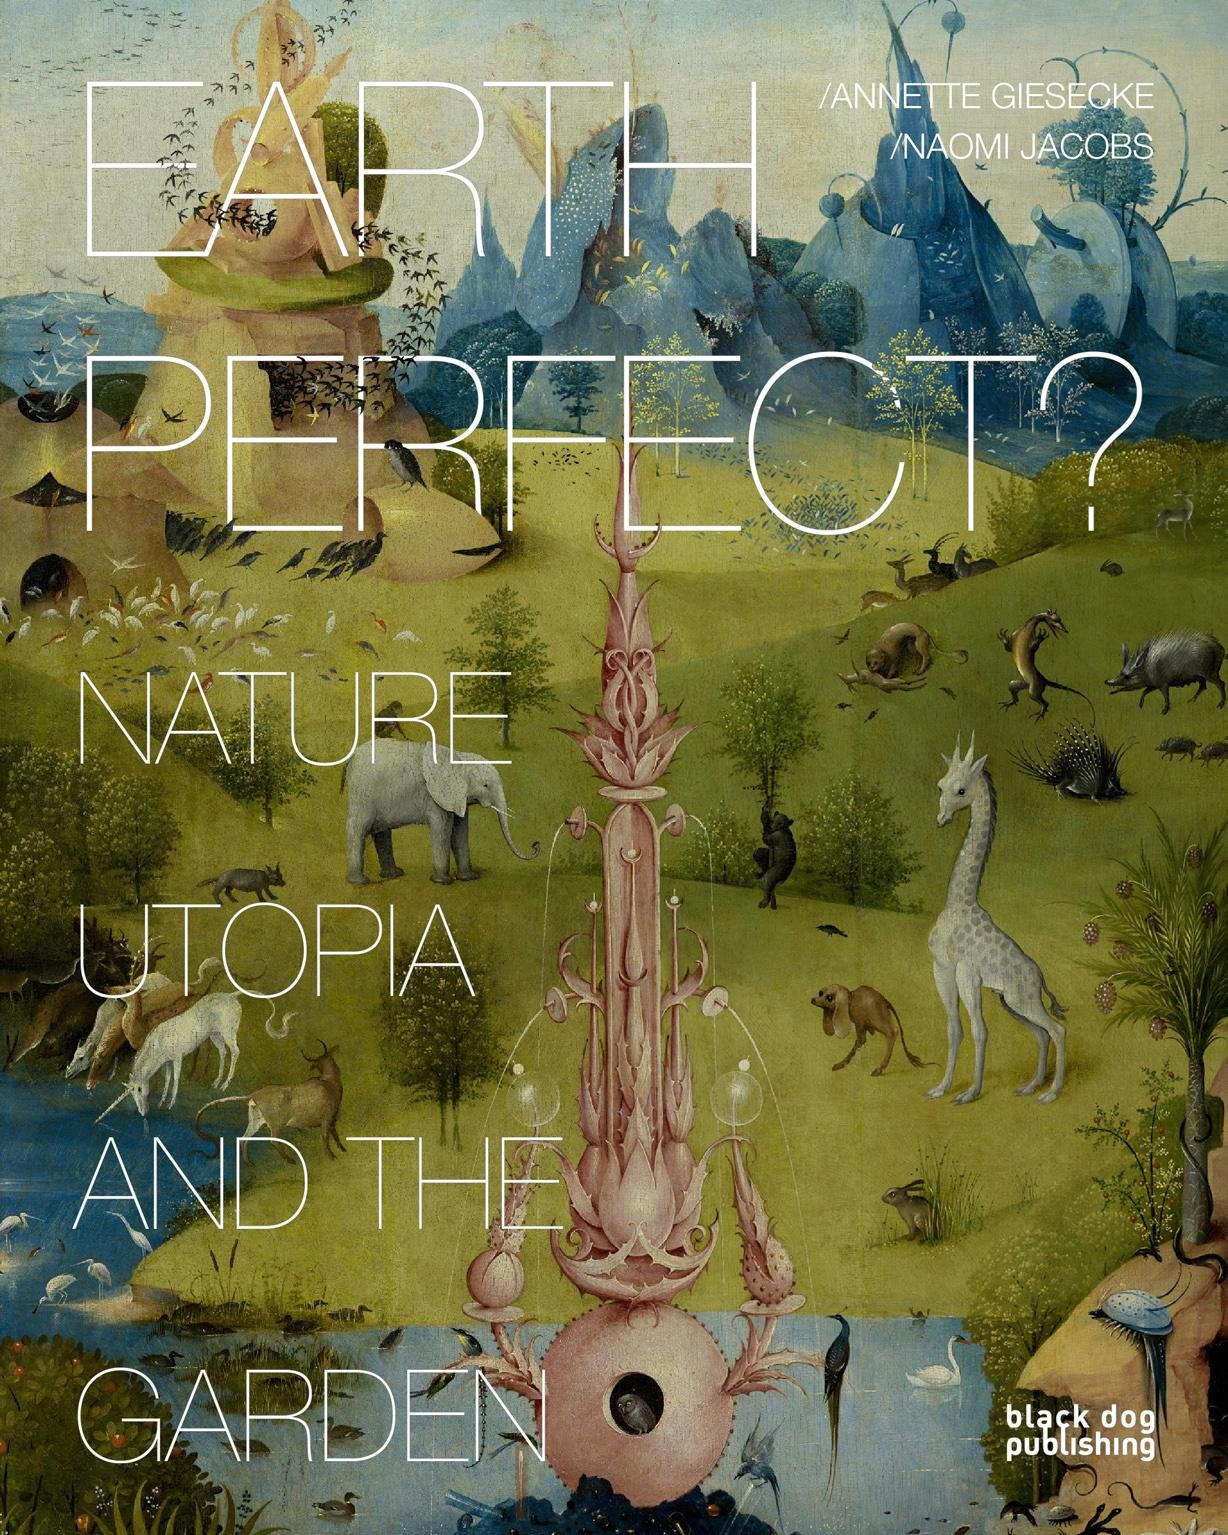 utopia essays my utopia essay utopia of usurers and other essays  earth perfect nature utopia and the garden annette giesecke nature utopia and the garden annette giesecke